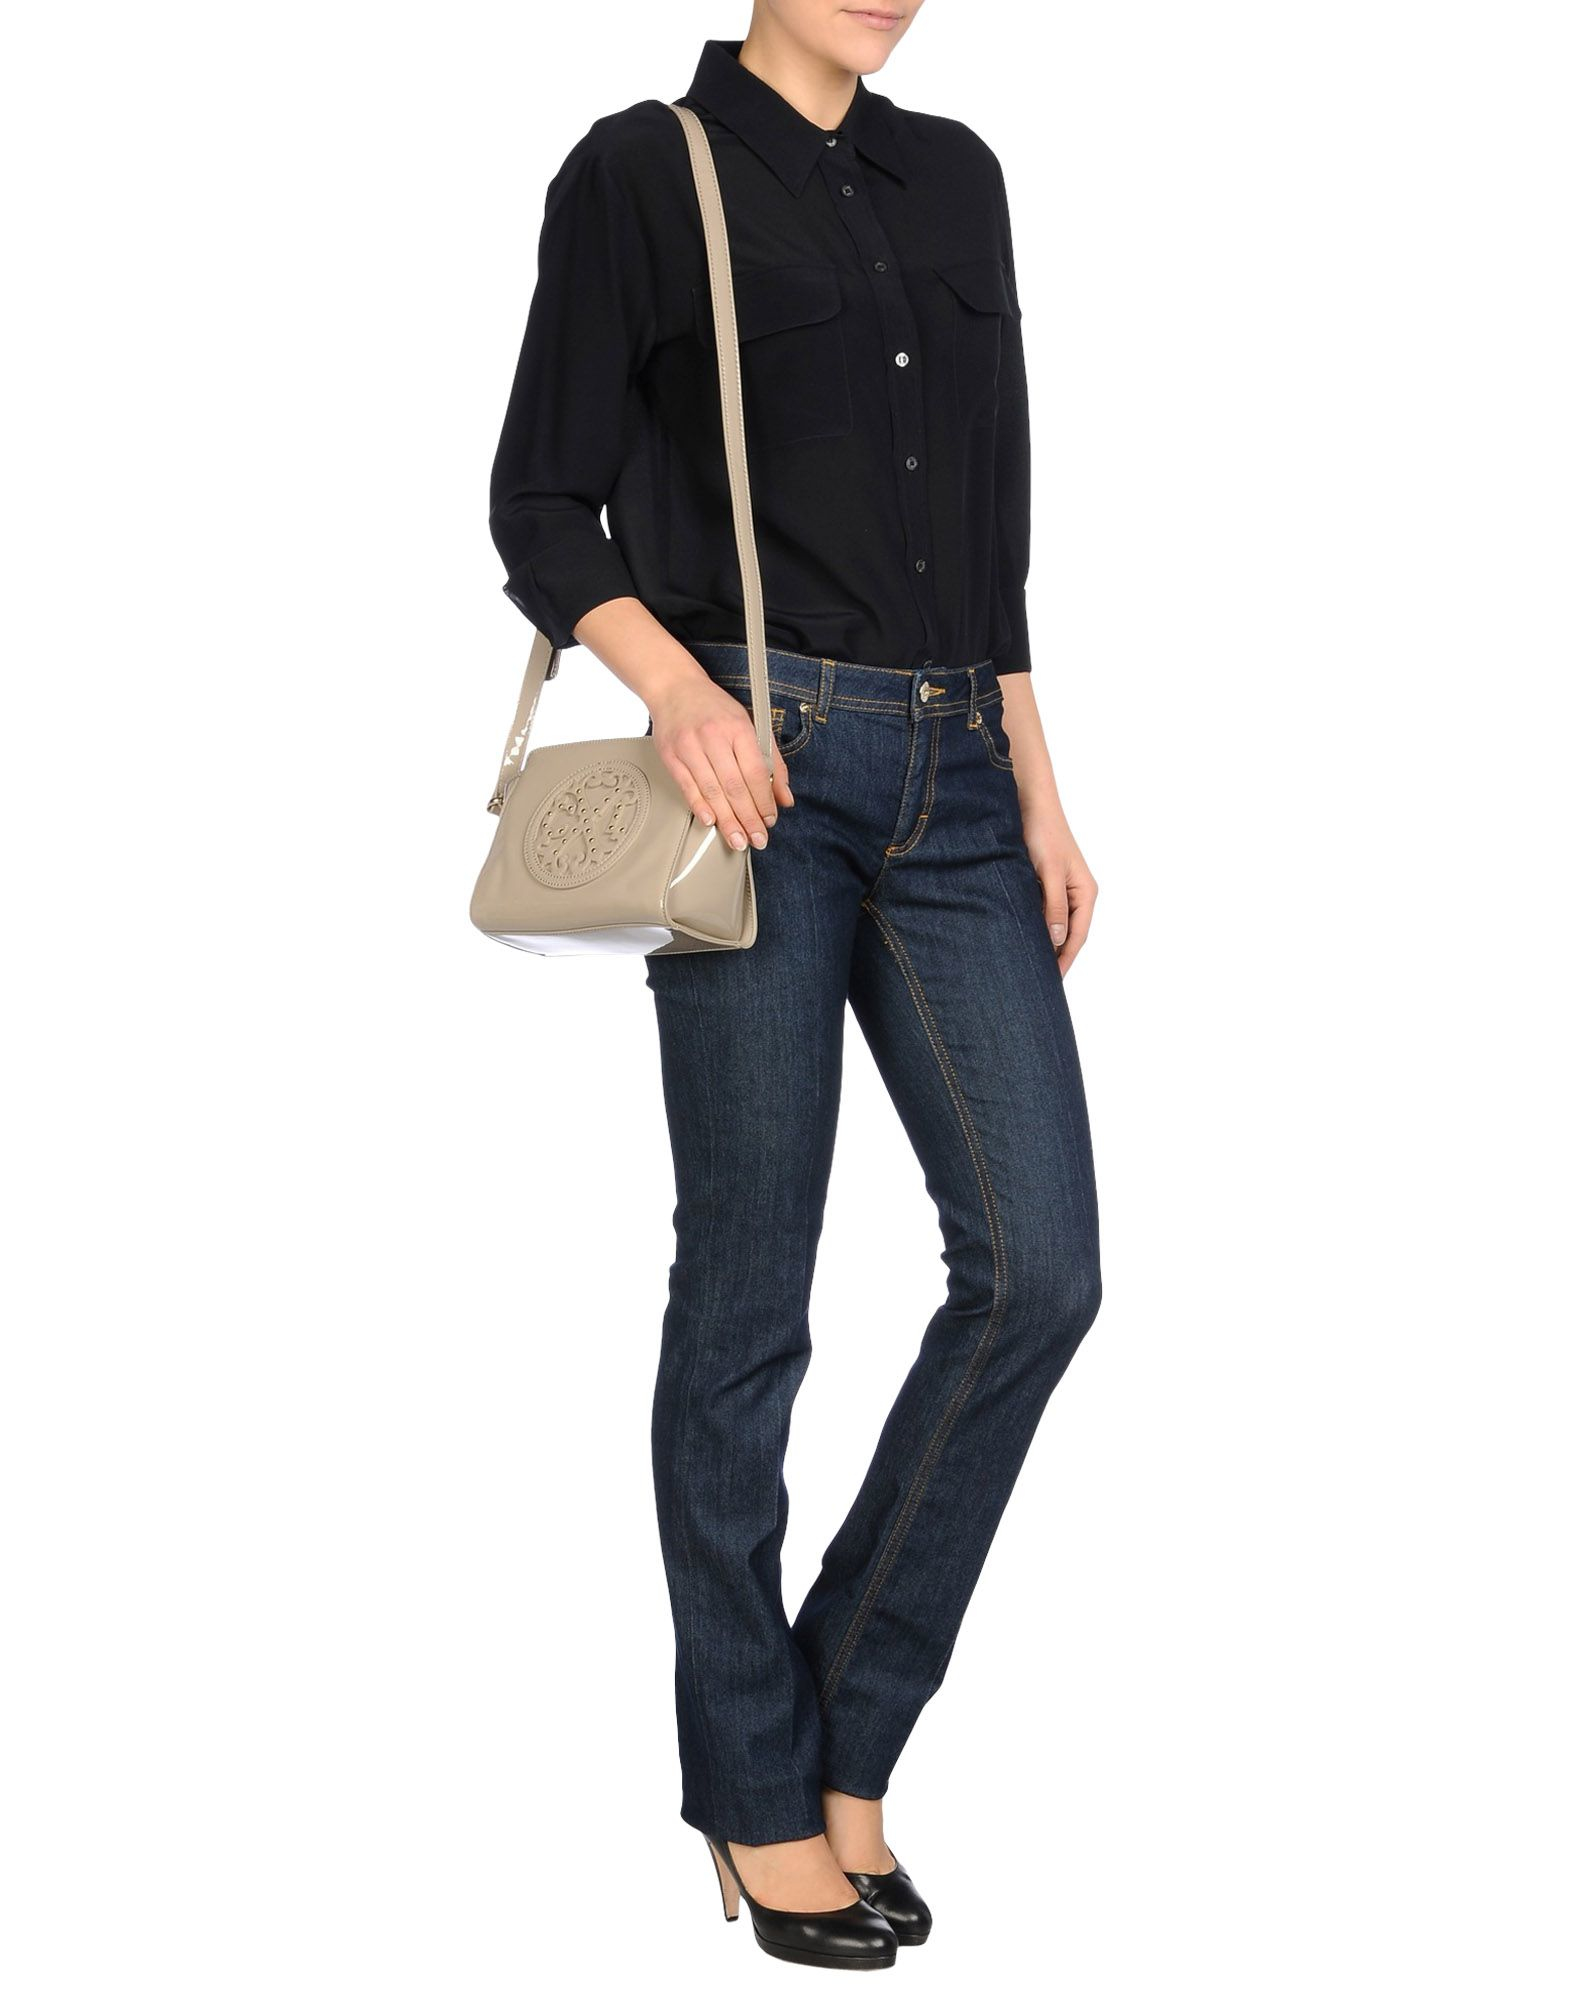 Christian Lacroix Cross-body Bag in Beige (Natural)